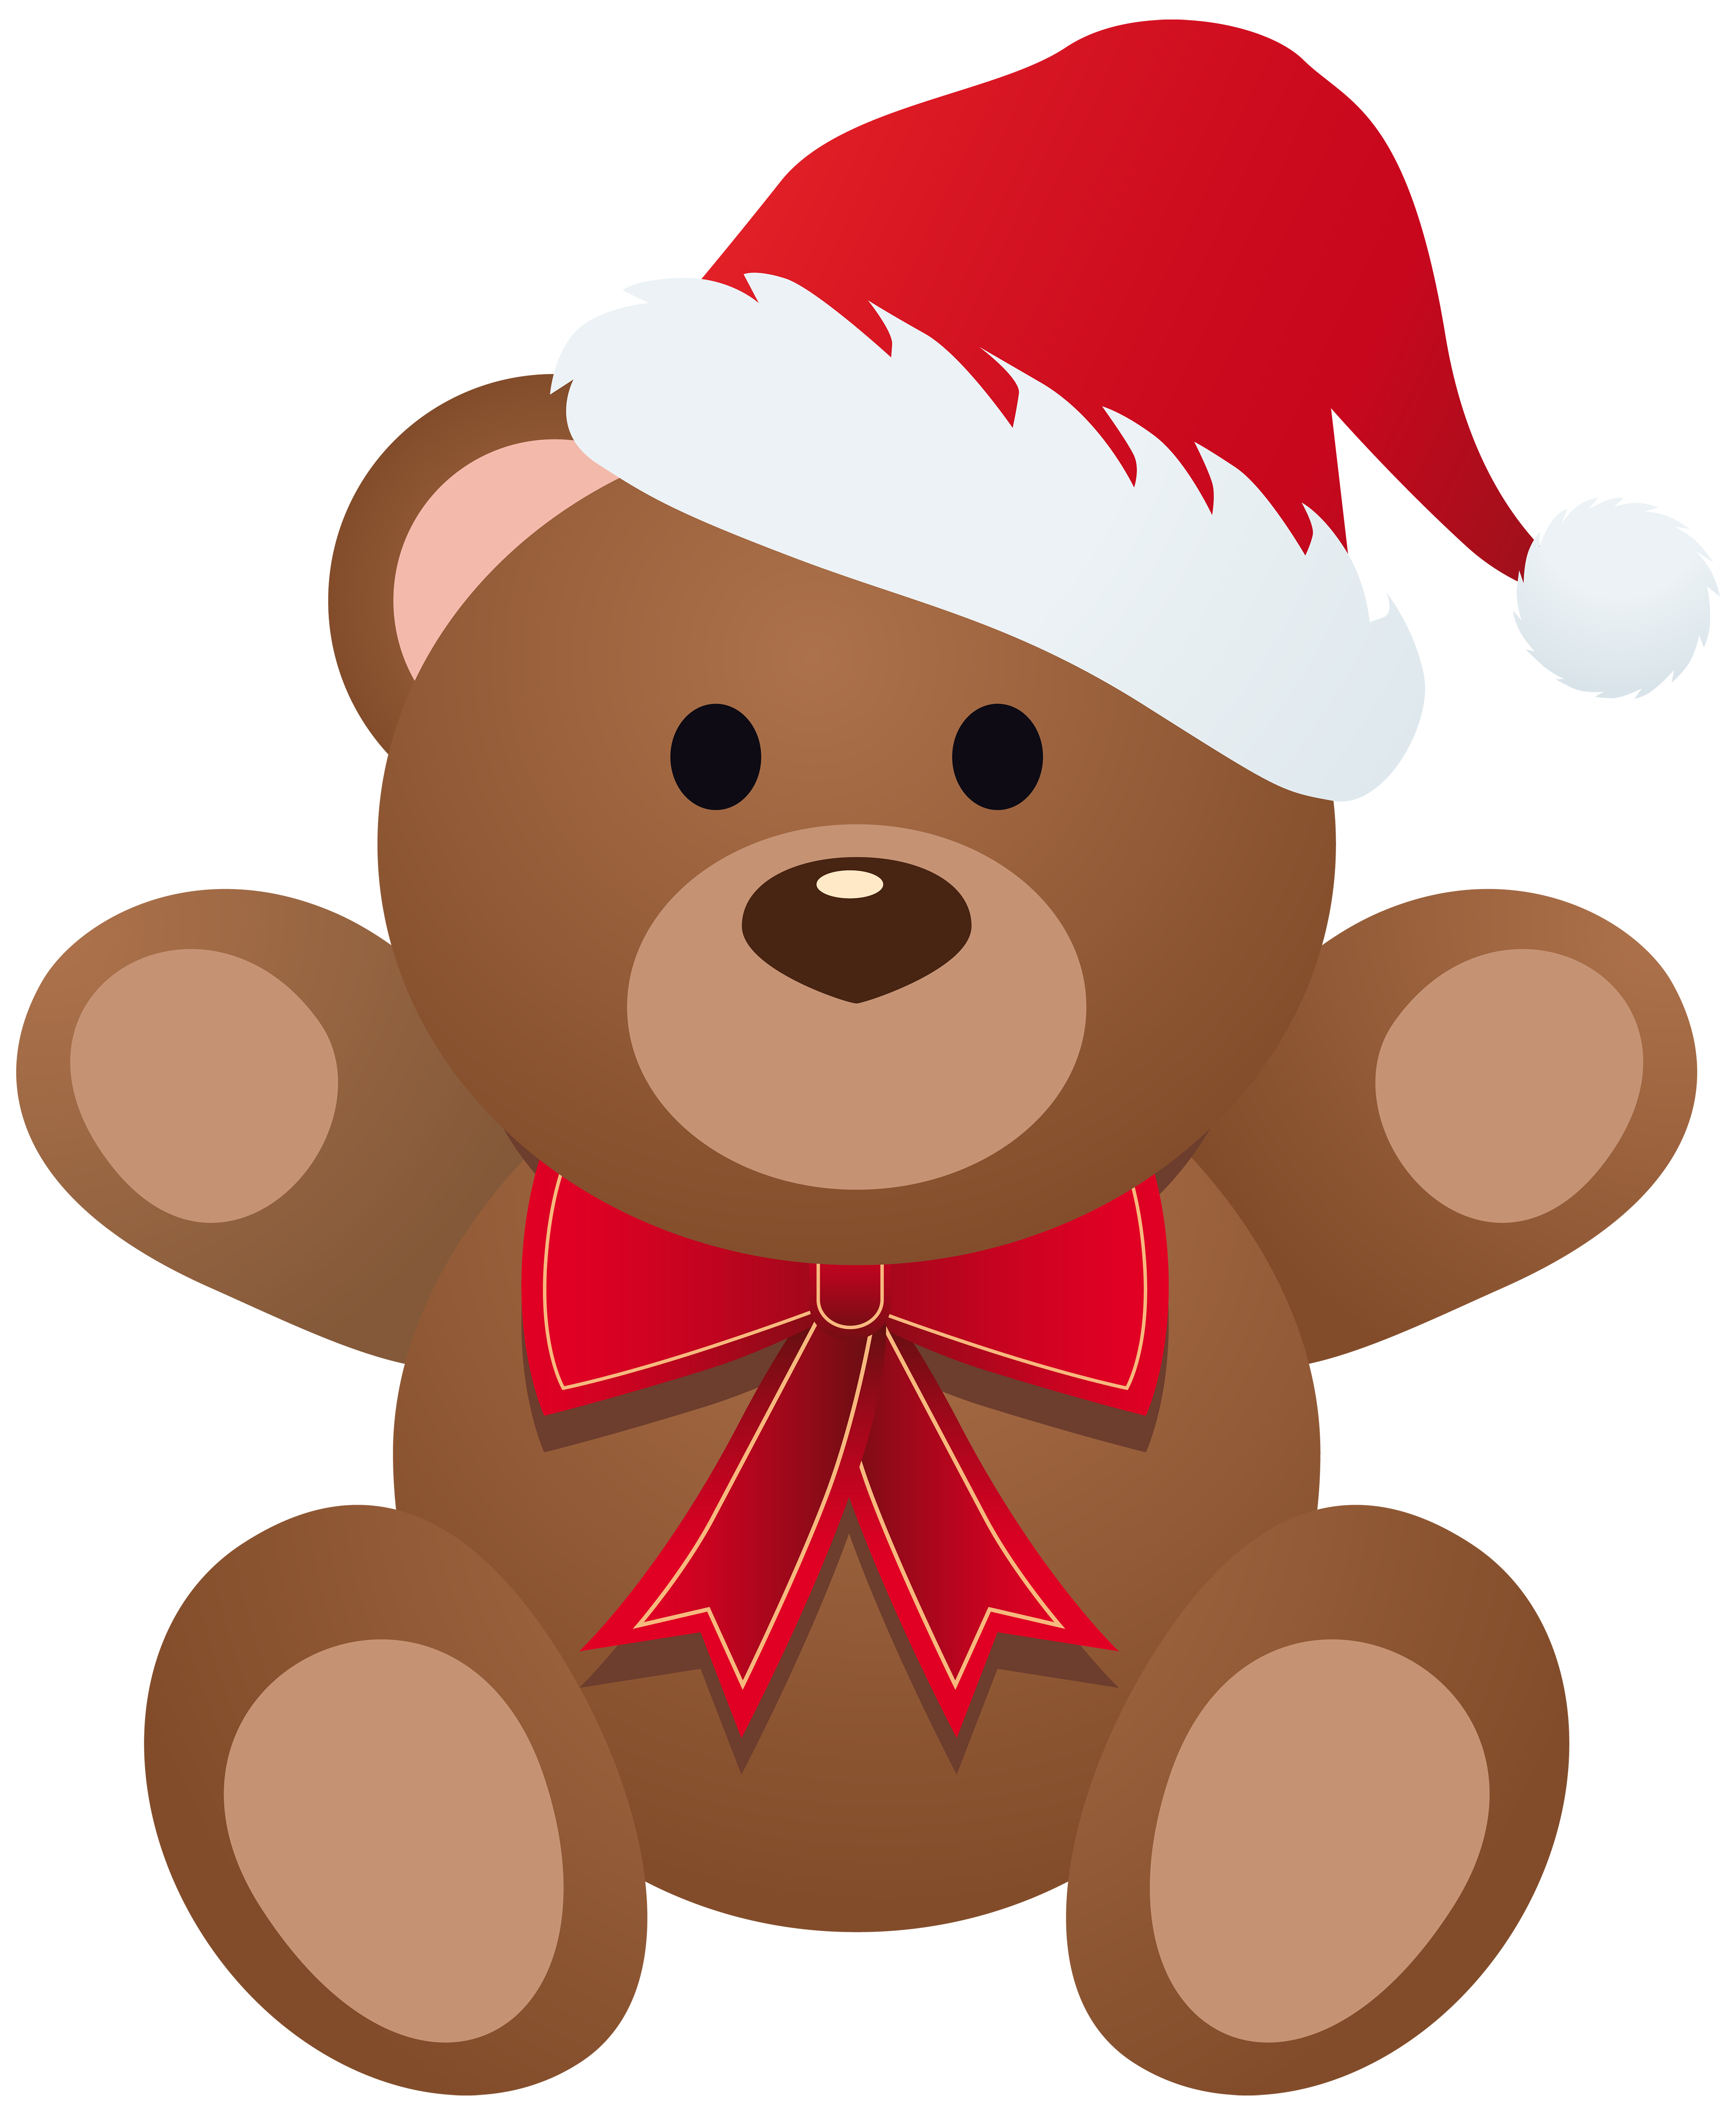 Christmas bear clipart png free download 28+ Collection of Christmas Teddy Clipart | High quality, free ... png free download